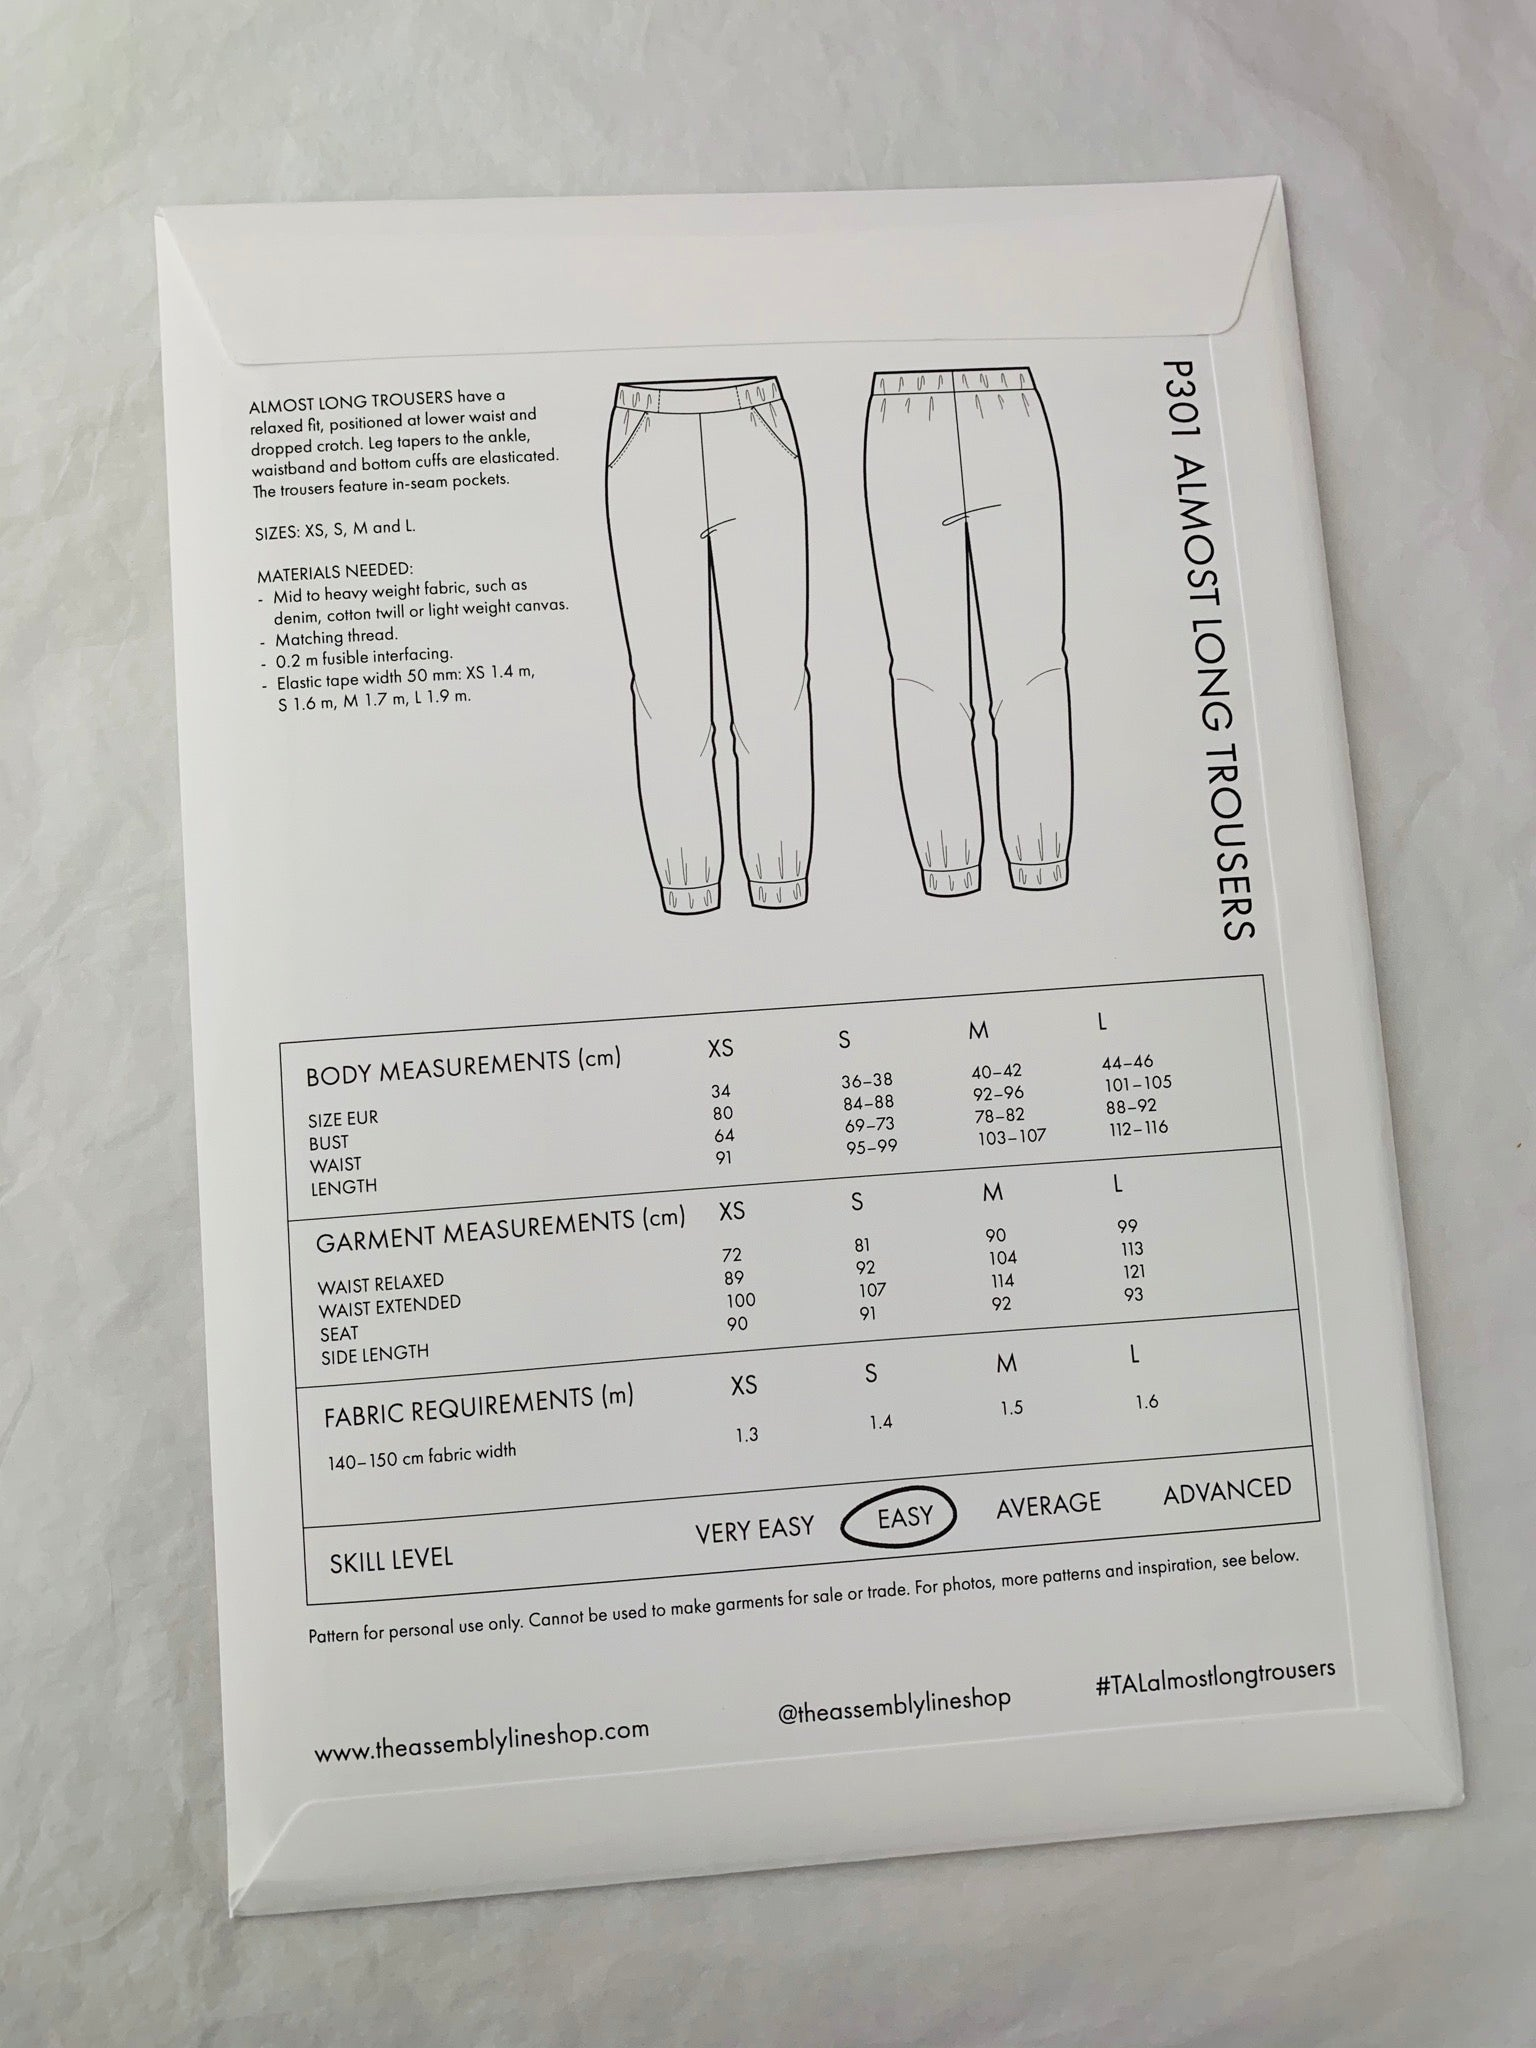 Assembly Line Almost Long Trousers Sewing Pattern